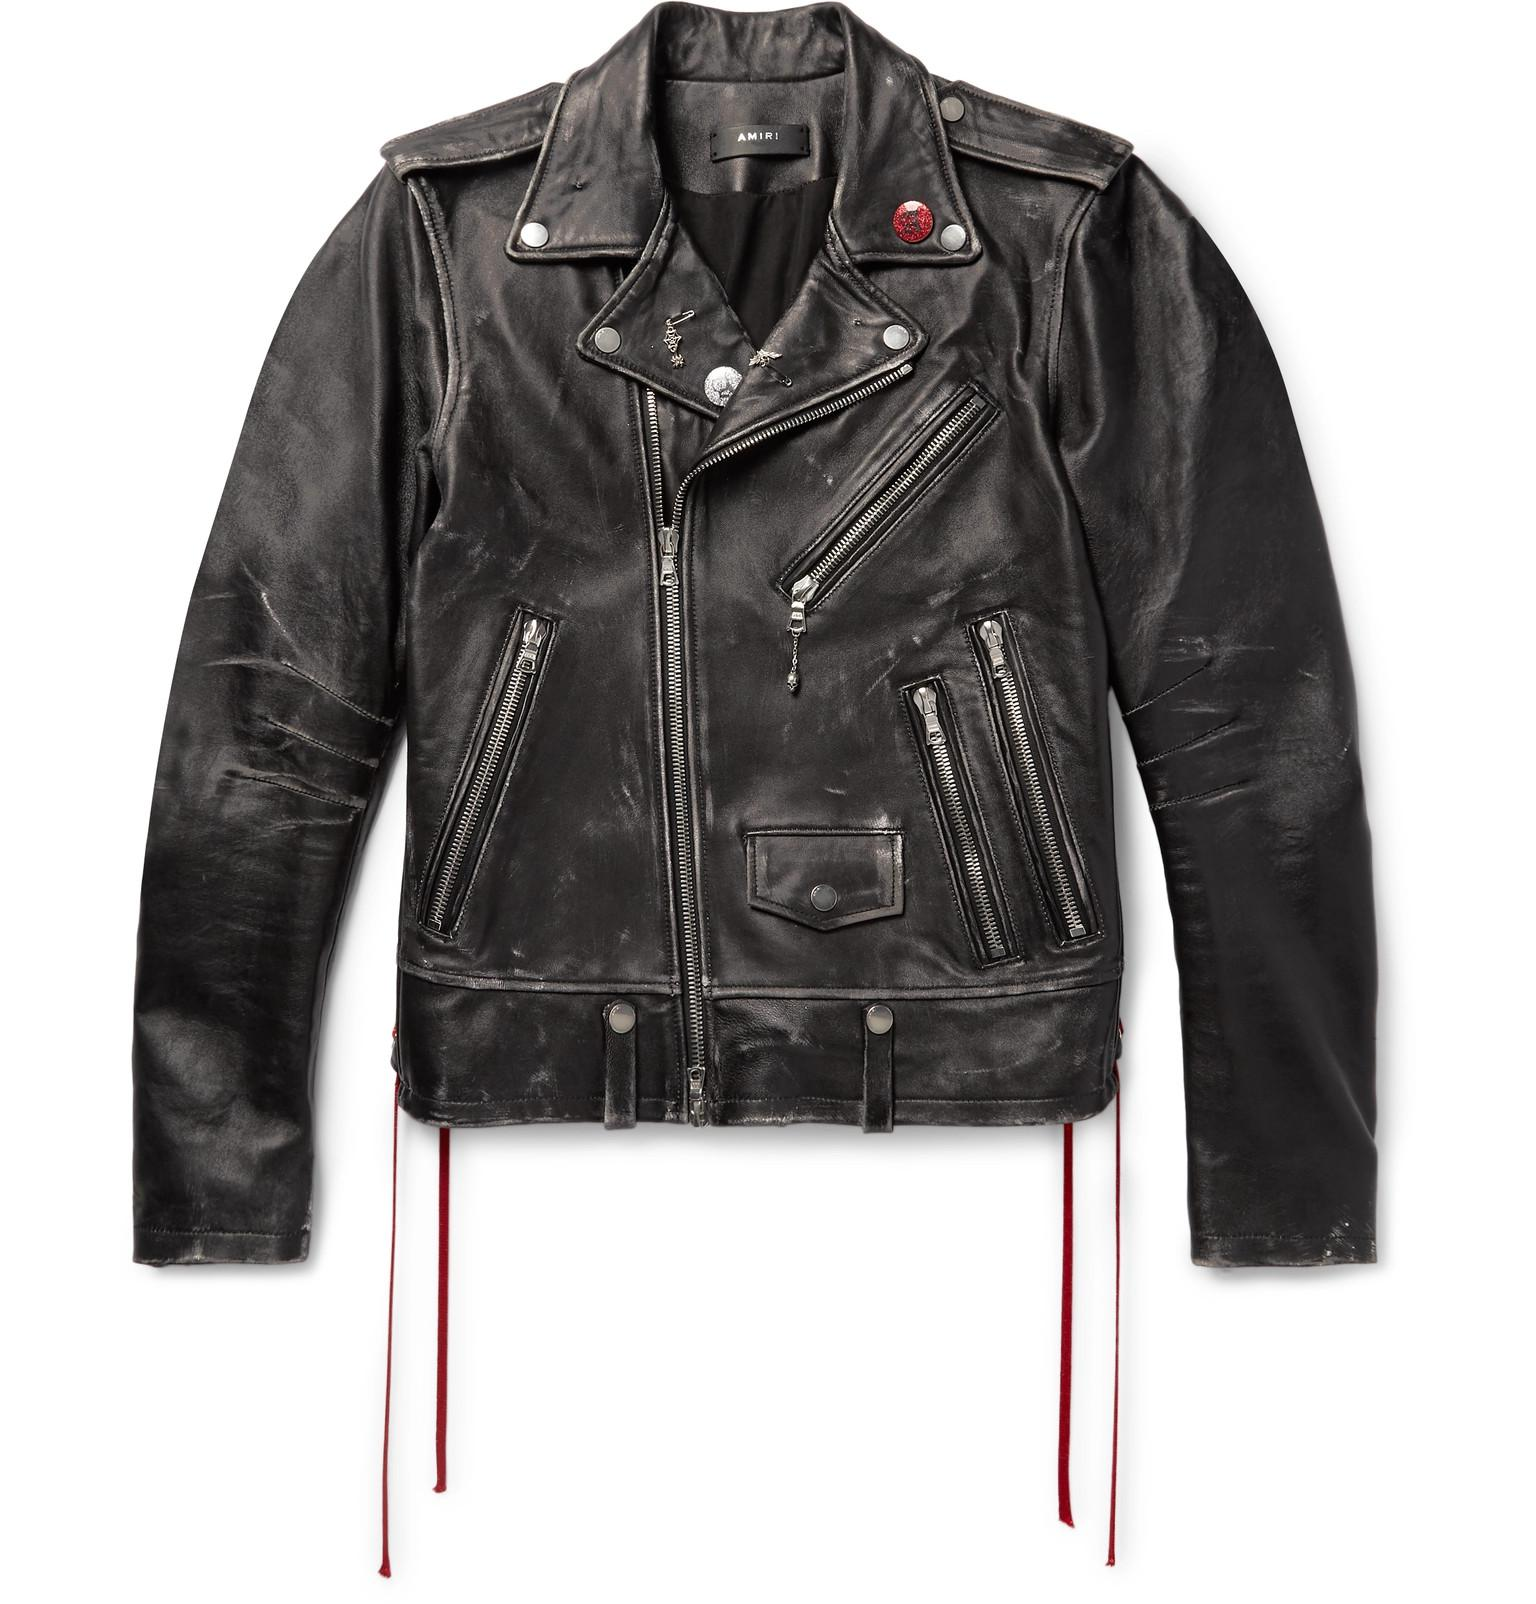 For Fullscreen View Biker Distressed Lyst Black Leather Embellished Amiri Jacket Men ngOF4qvYx